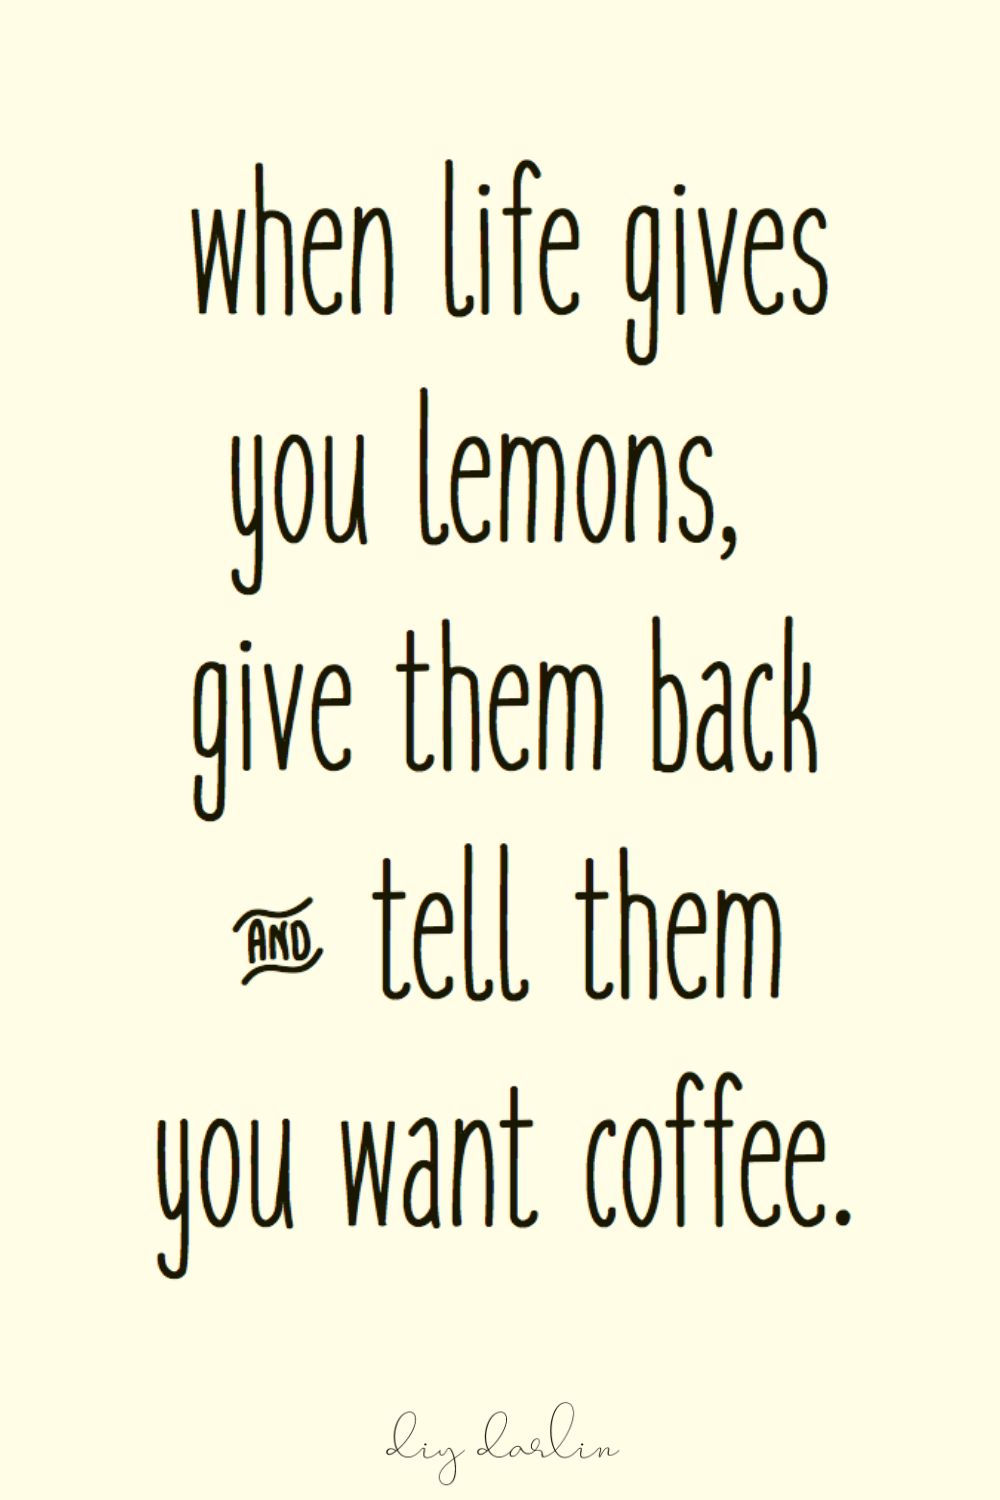 Feel Good Friday Funny Coffee Quotes Diy Darlin Funny Coffee Quotes Coffee Quotes Funny Inspirational Coffee Quotes